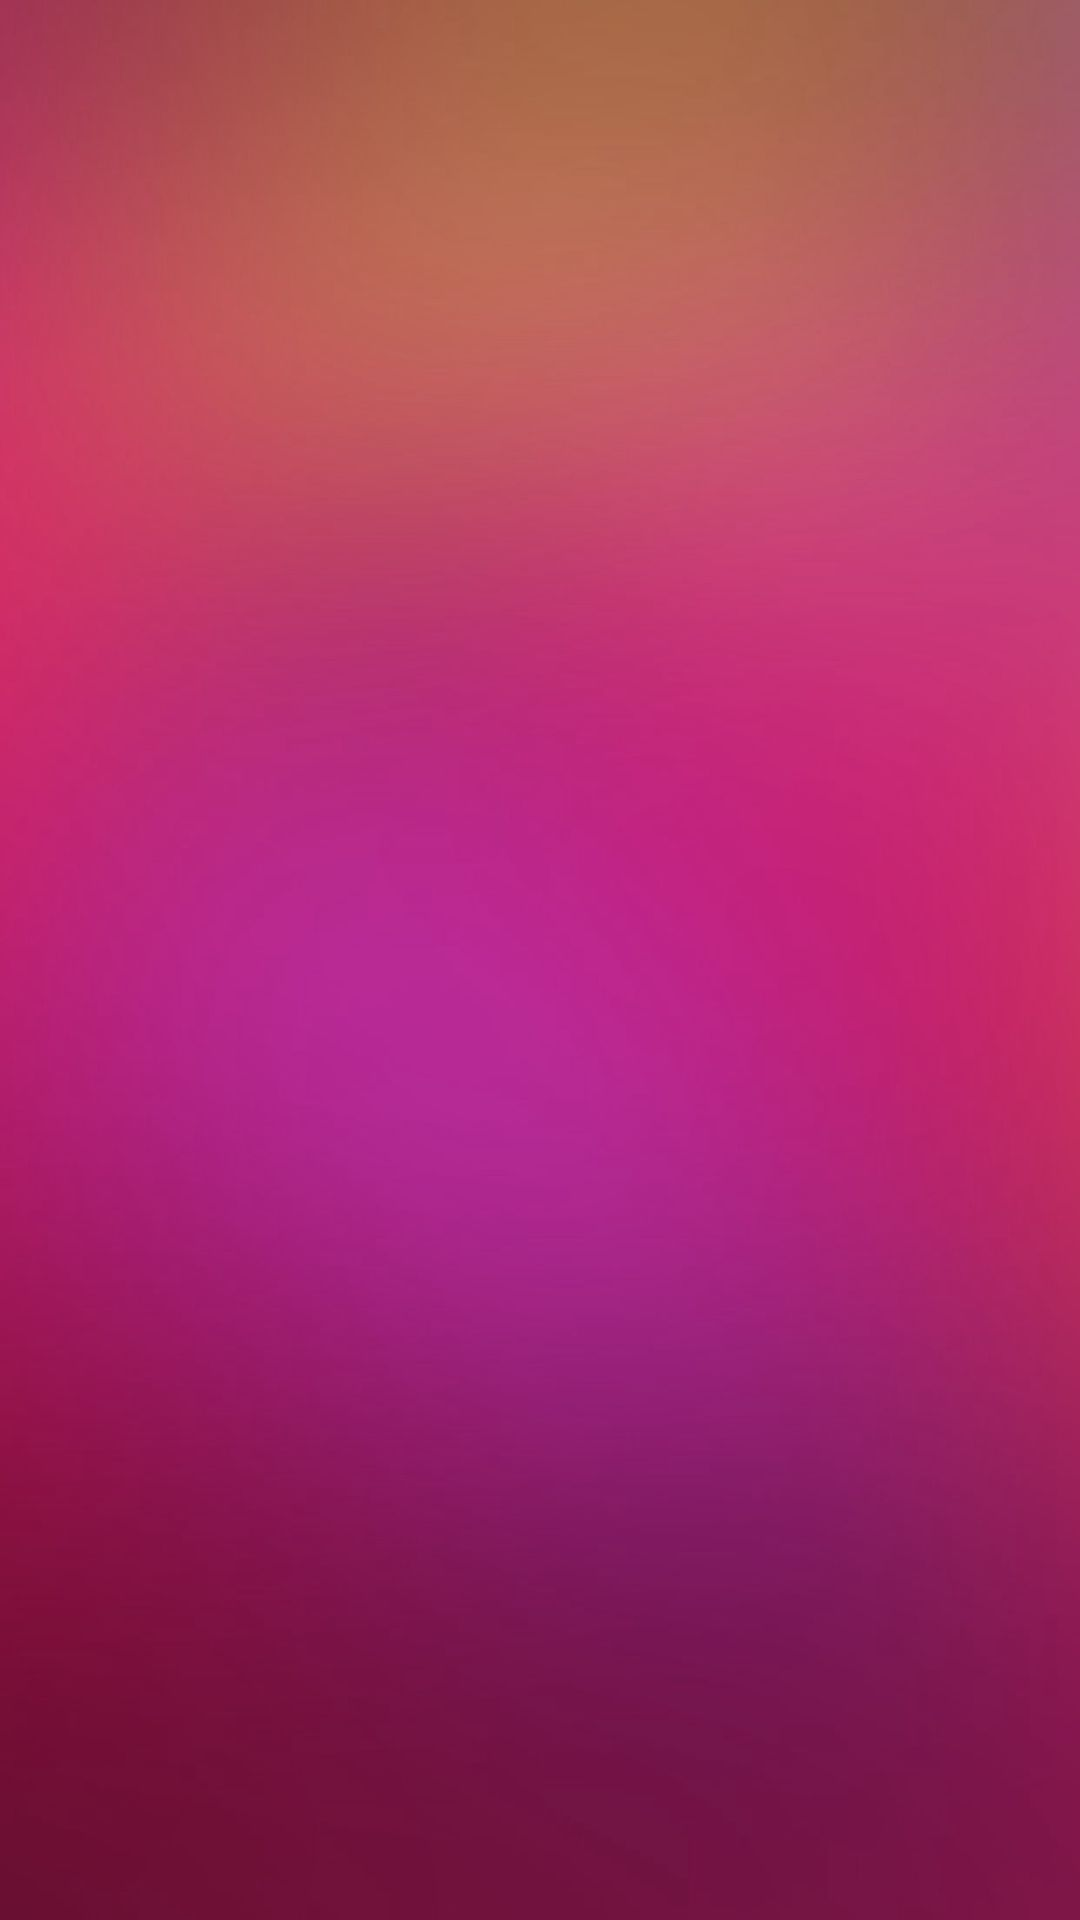 Hot Pink Red Gradation Blur iPhone 6 wallpaper | Colors, Wallpaper ...